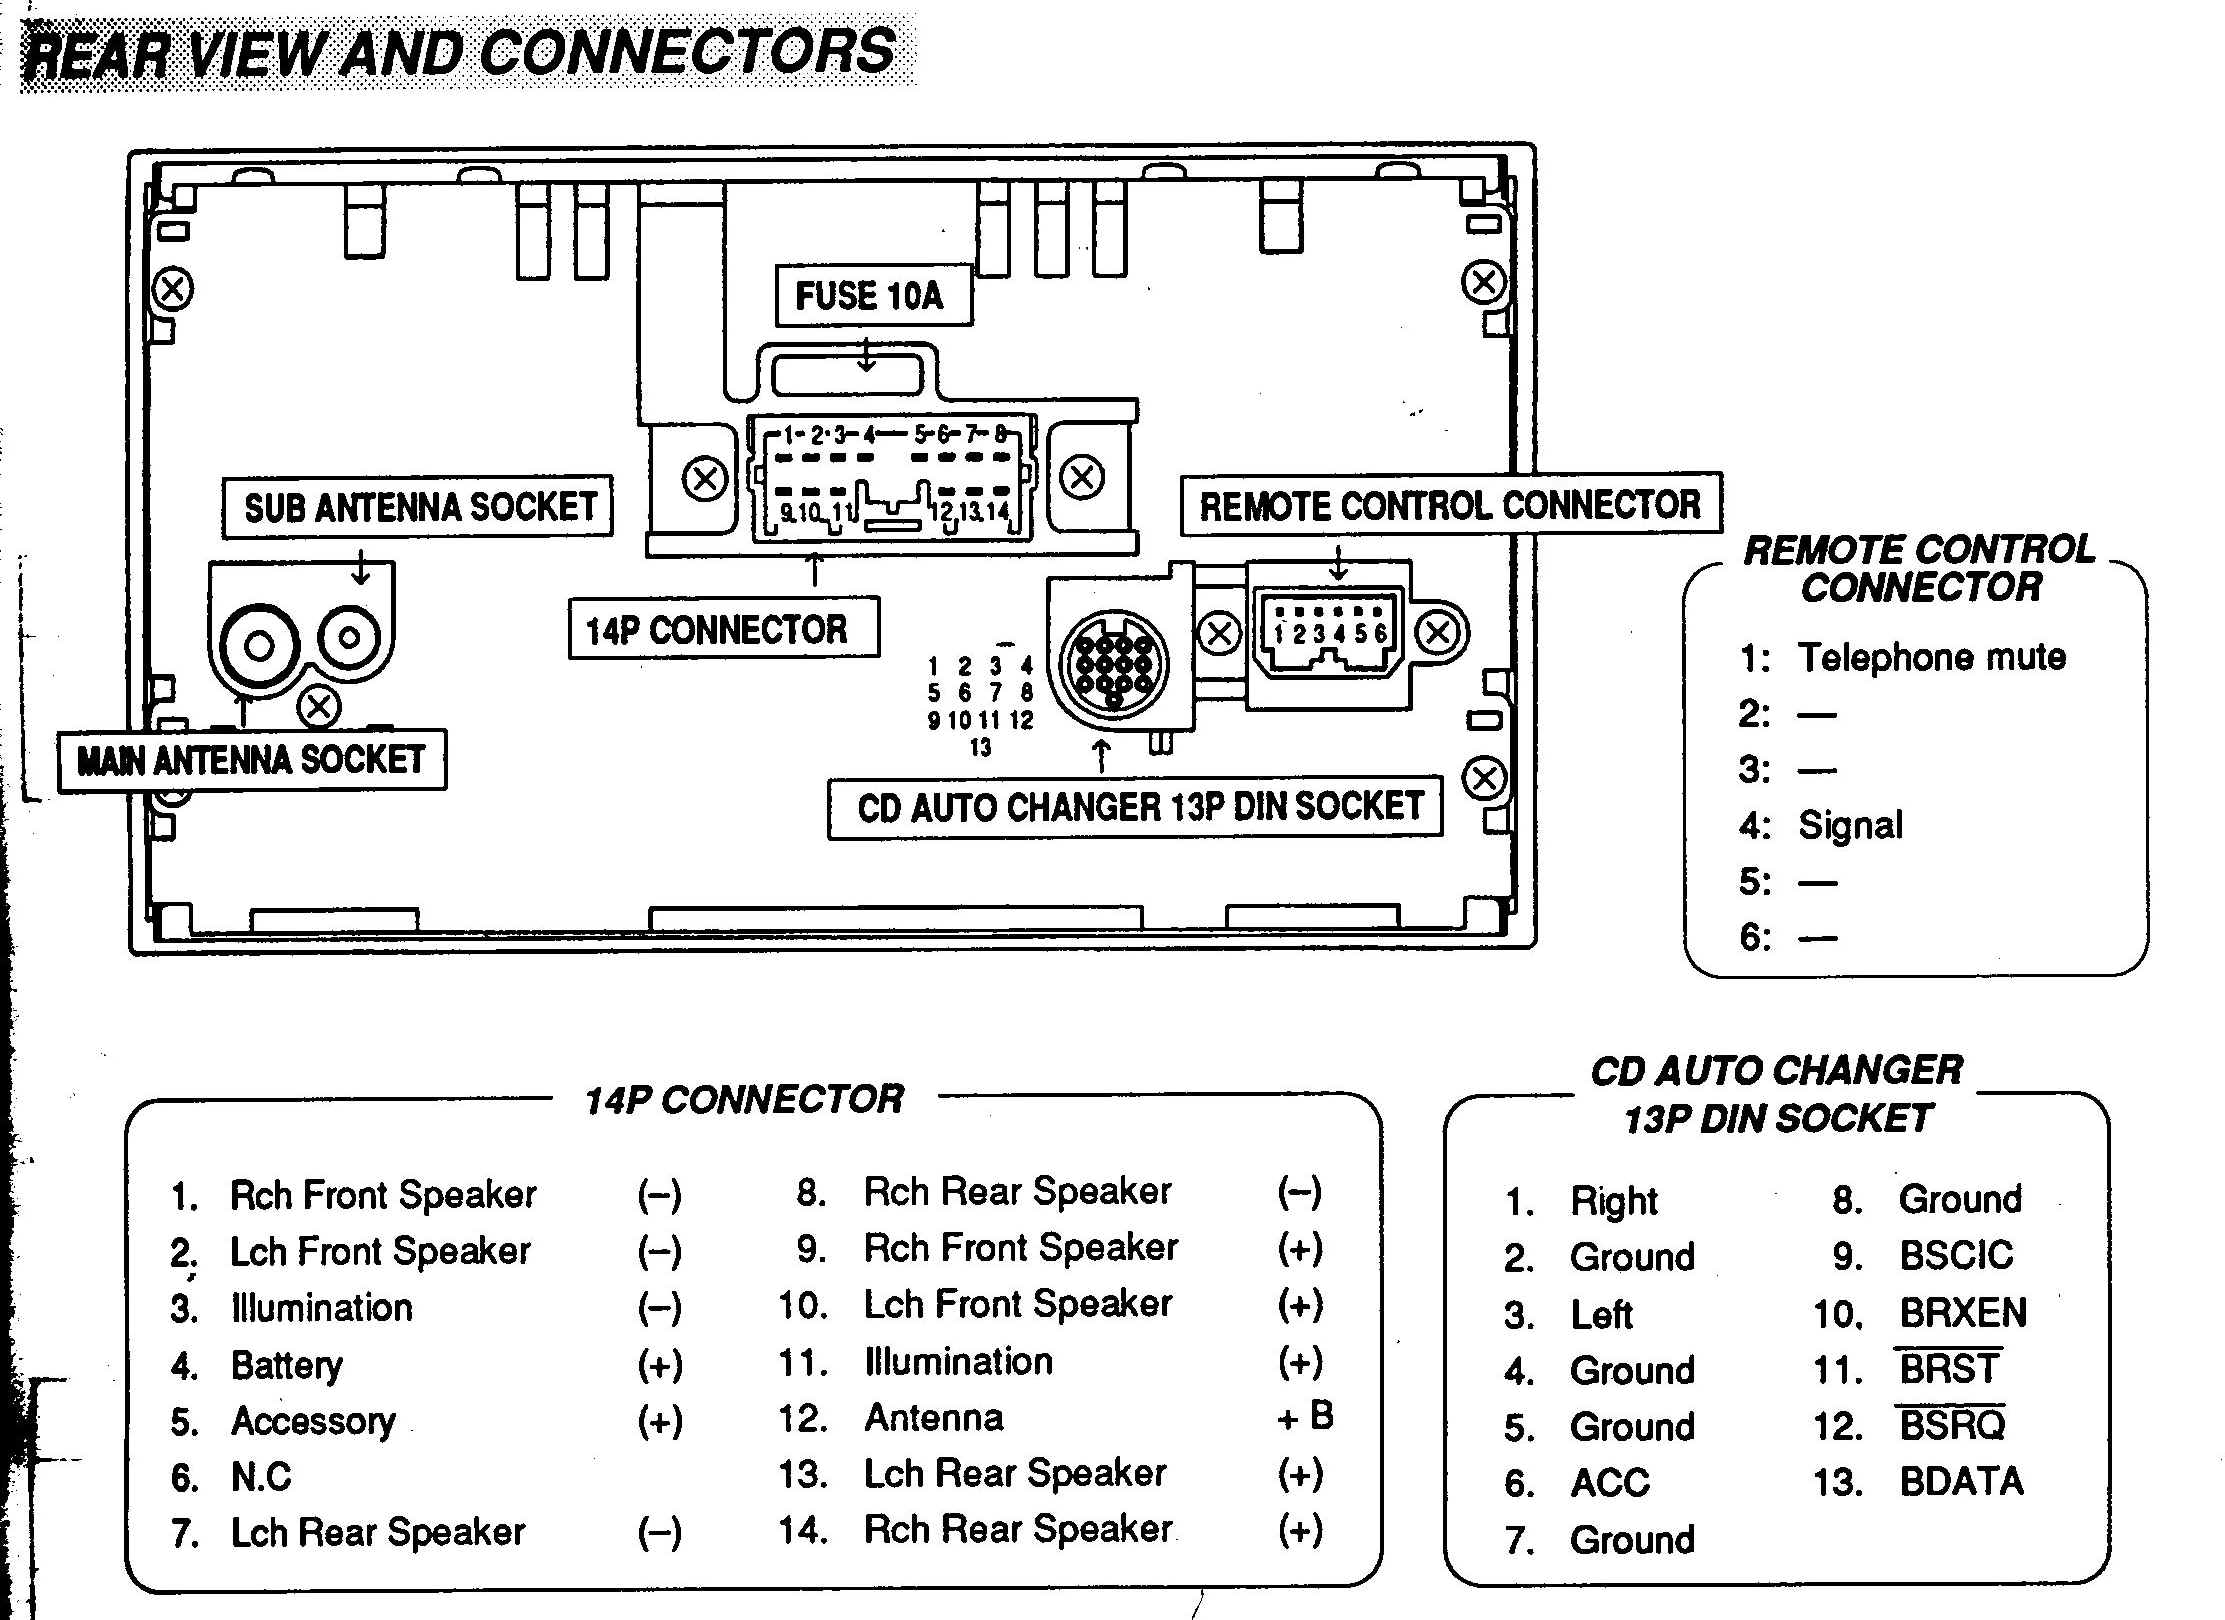 Factory Stereo Wiring Diagrams - Wiring Diagram Img on nissan radio wiring diagram, 2001 nissan xterra engine diagram, dodge caravan wiring diagram, nissan frontier trailer wiring diagram, nissan maxima wiring diagram, 2011 nissan rogue stereo wiring diagram, nissan frontier fuse box diagram, 2000 nissan frontier sunroof, nissan frontier parts diagram, 2000 nissan altima, 2000 nissan frontier speaker size, 2000 nissan frontier suspension,